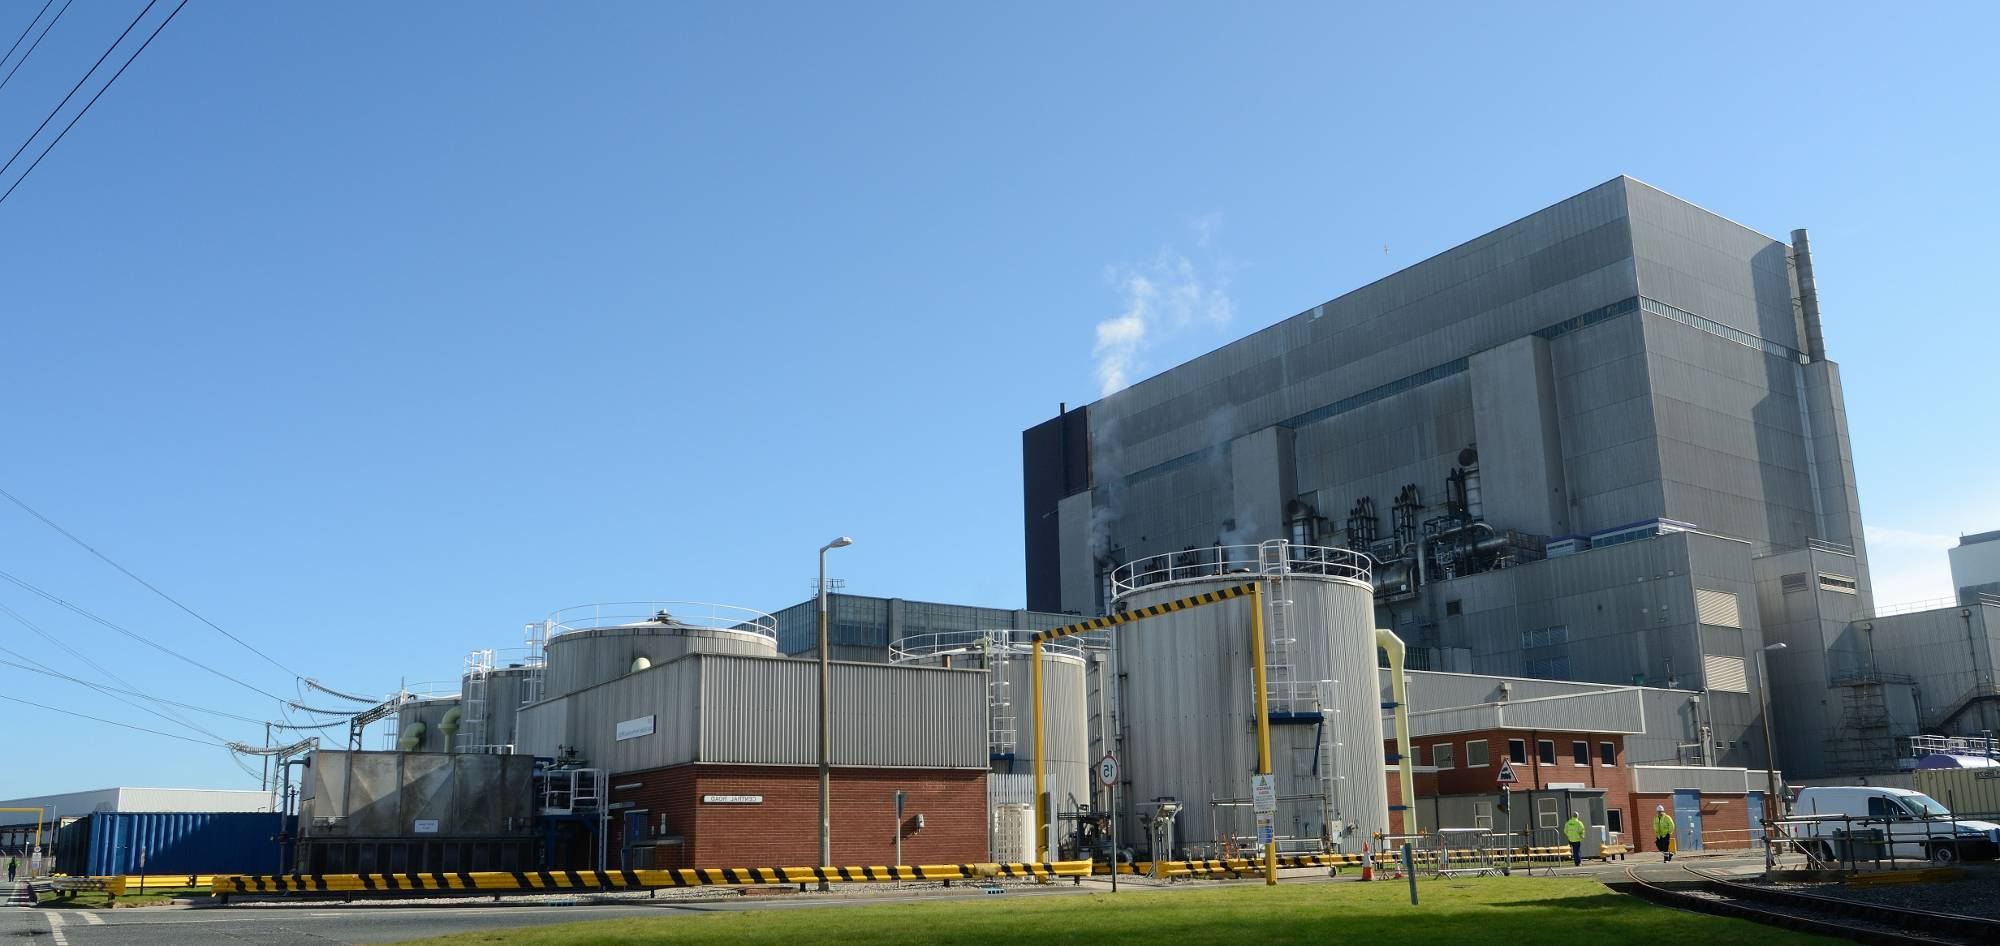 Heysham power plant